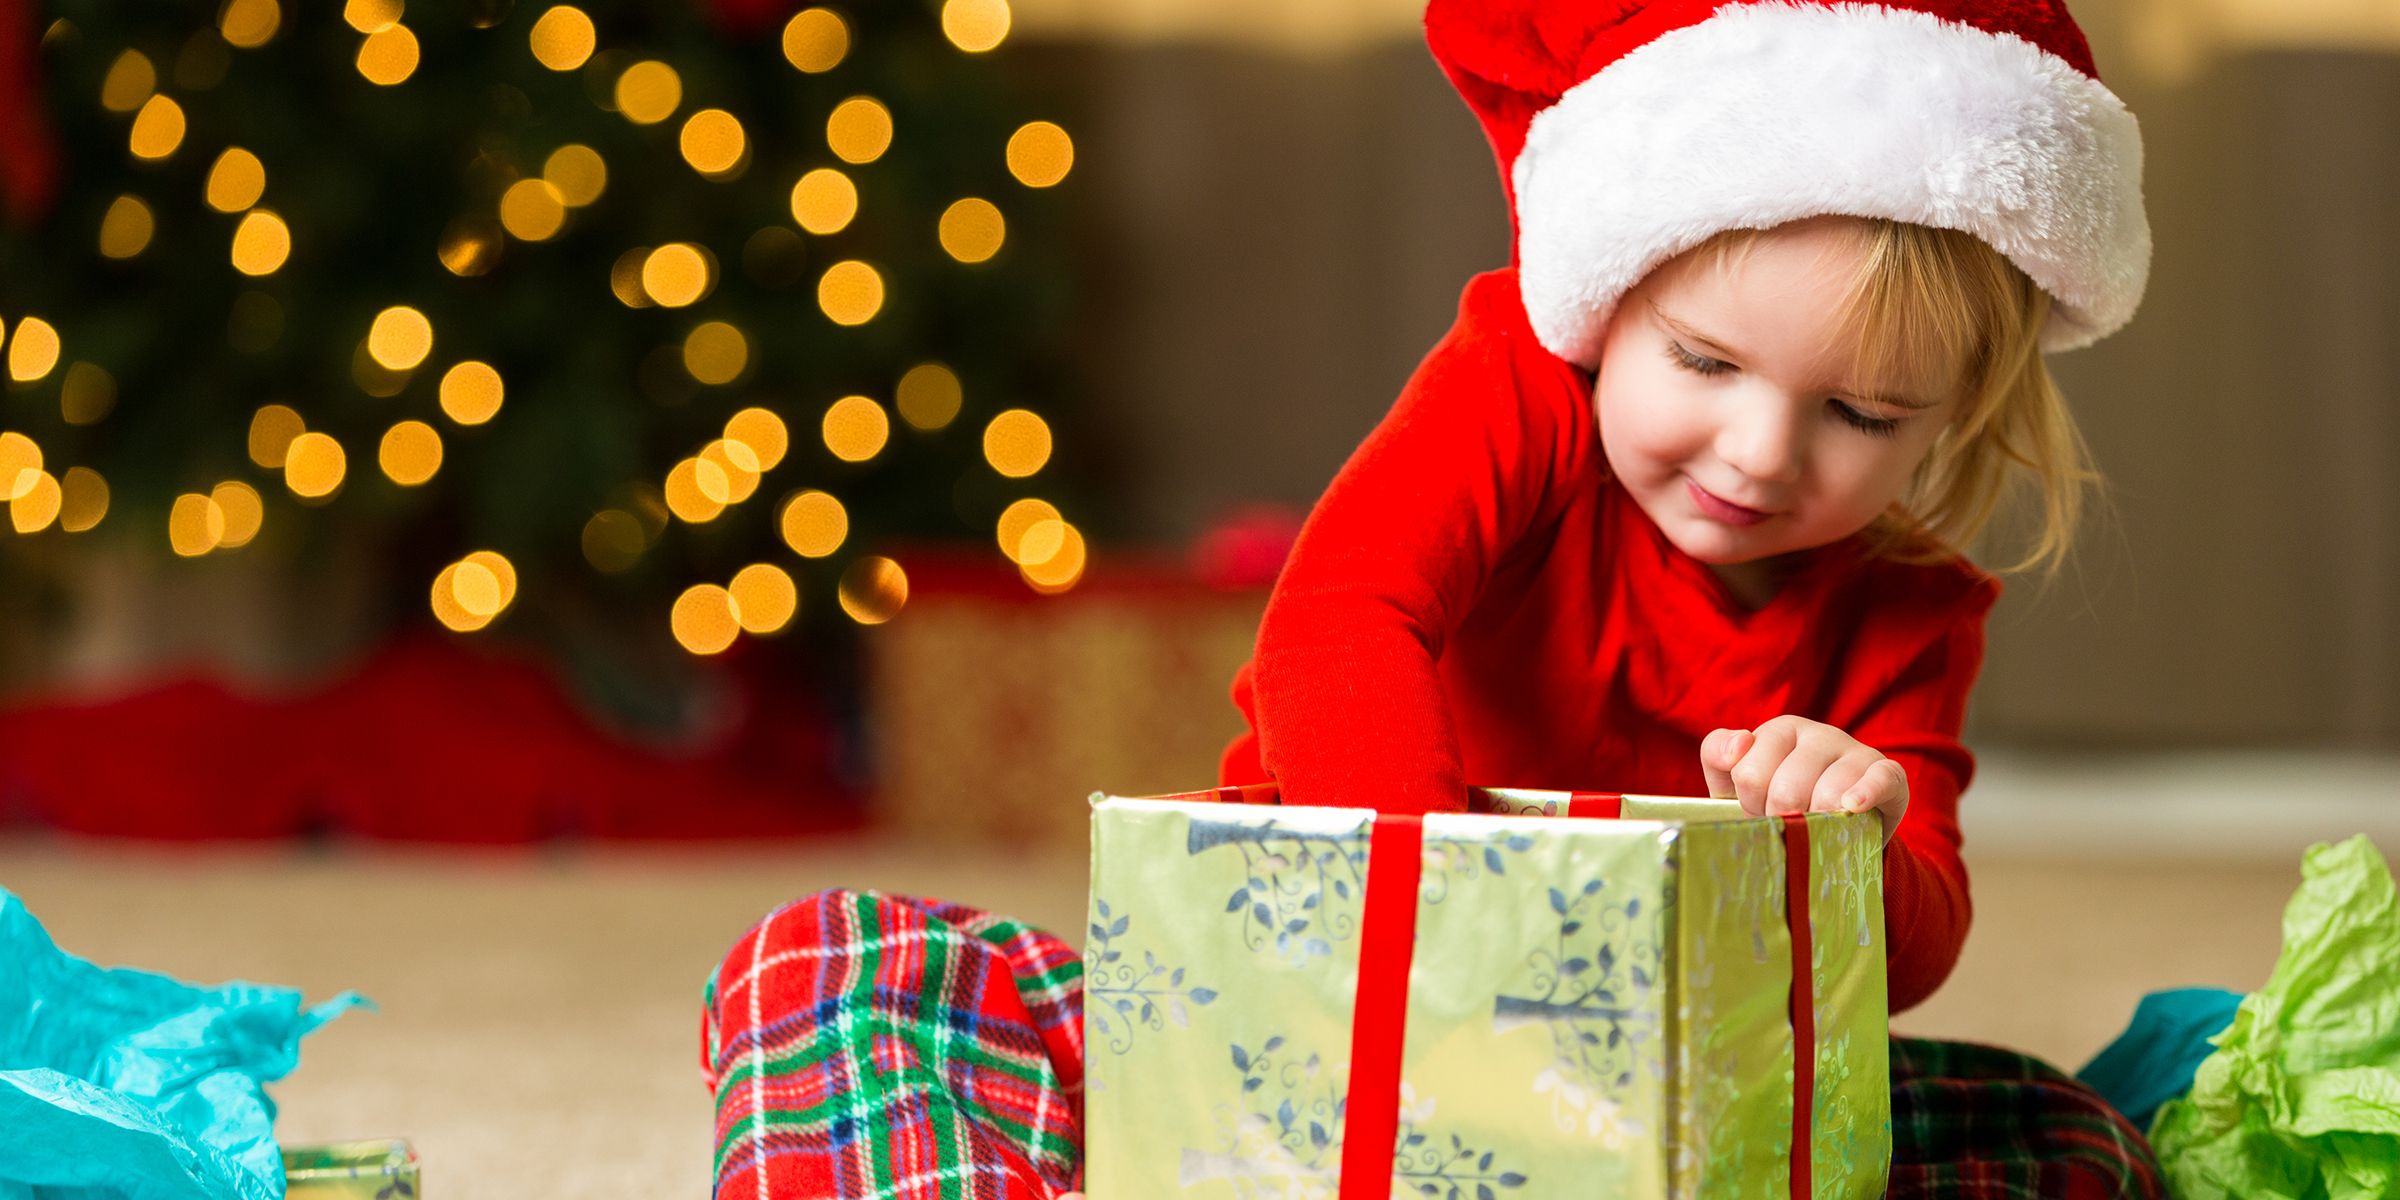 The Best Gifts For Kids By Age According To Our 2020 Gift Guides